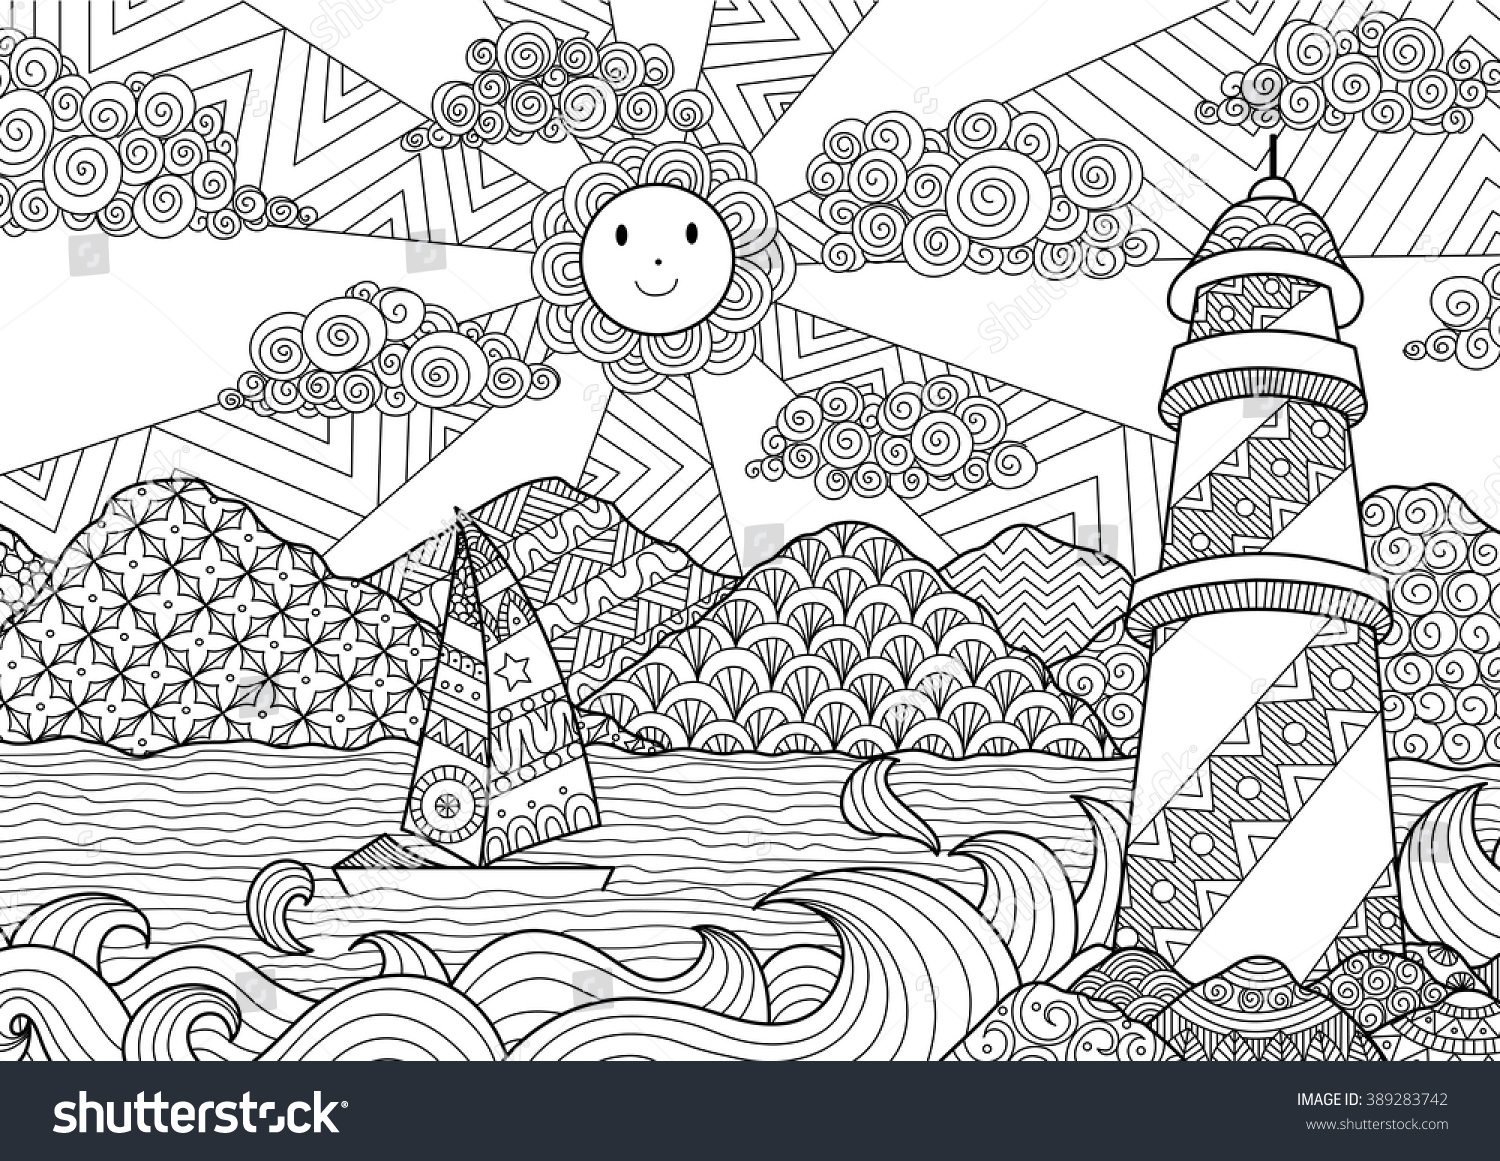 New Line Art Design : Seascape line art design coloring book stock vector